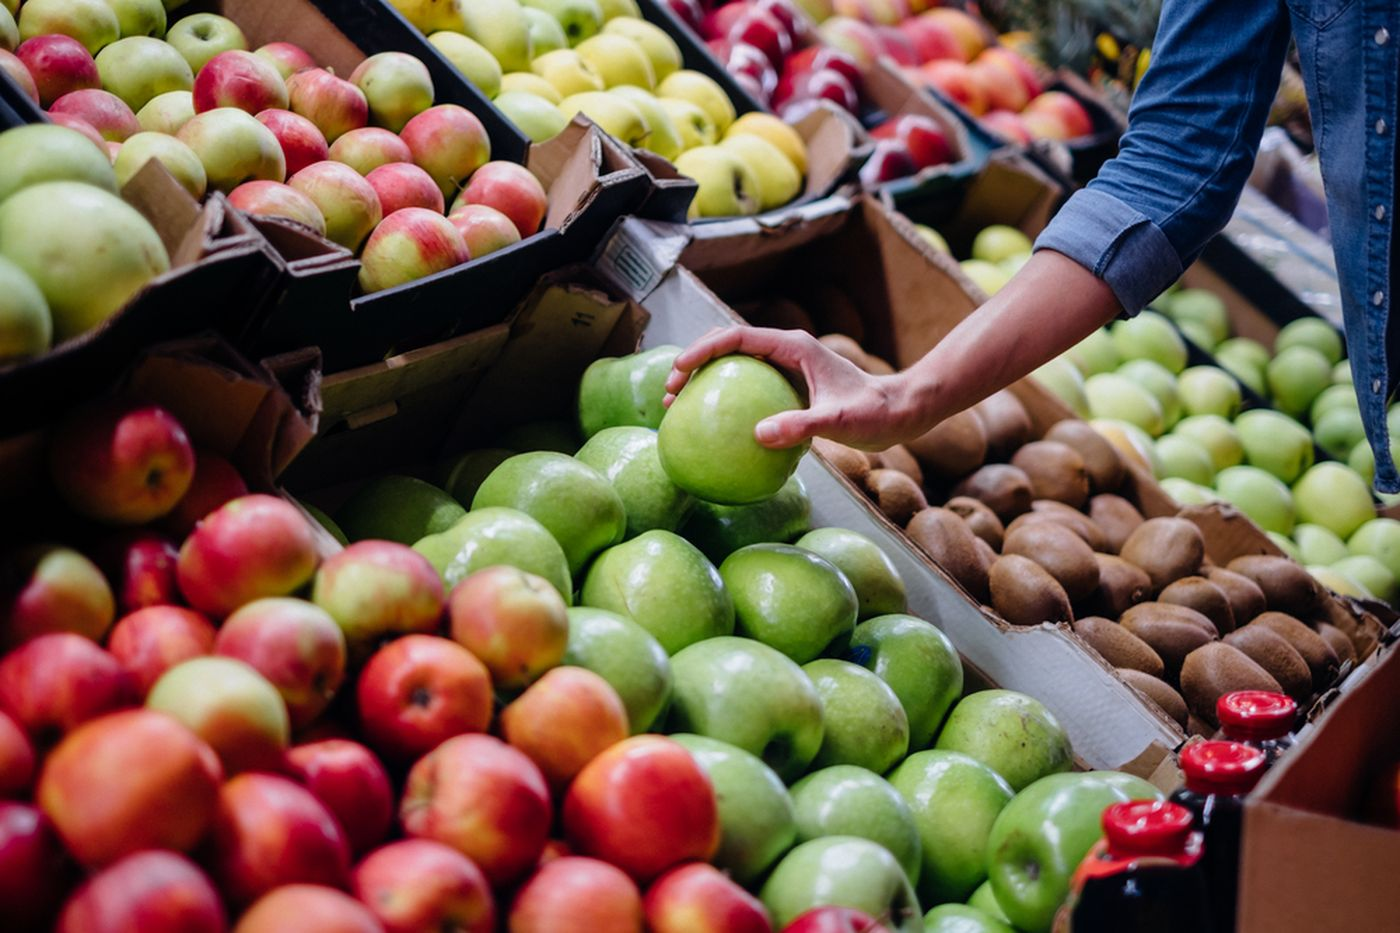 https://tickertapecdn.tdameritrade.com/assets/images/pages/md/Shopping for fruit in grocery store